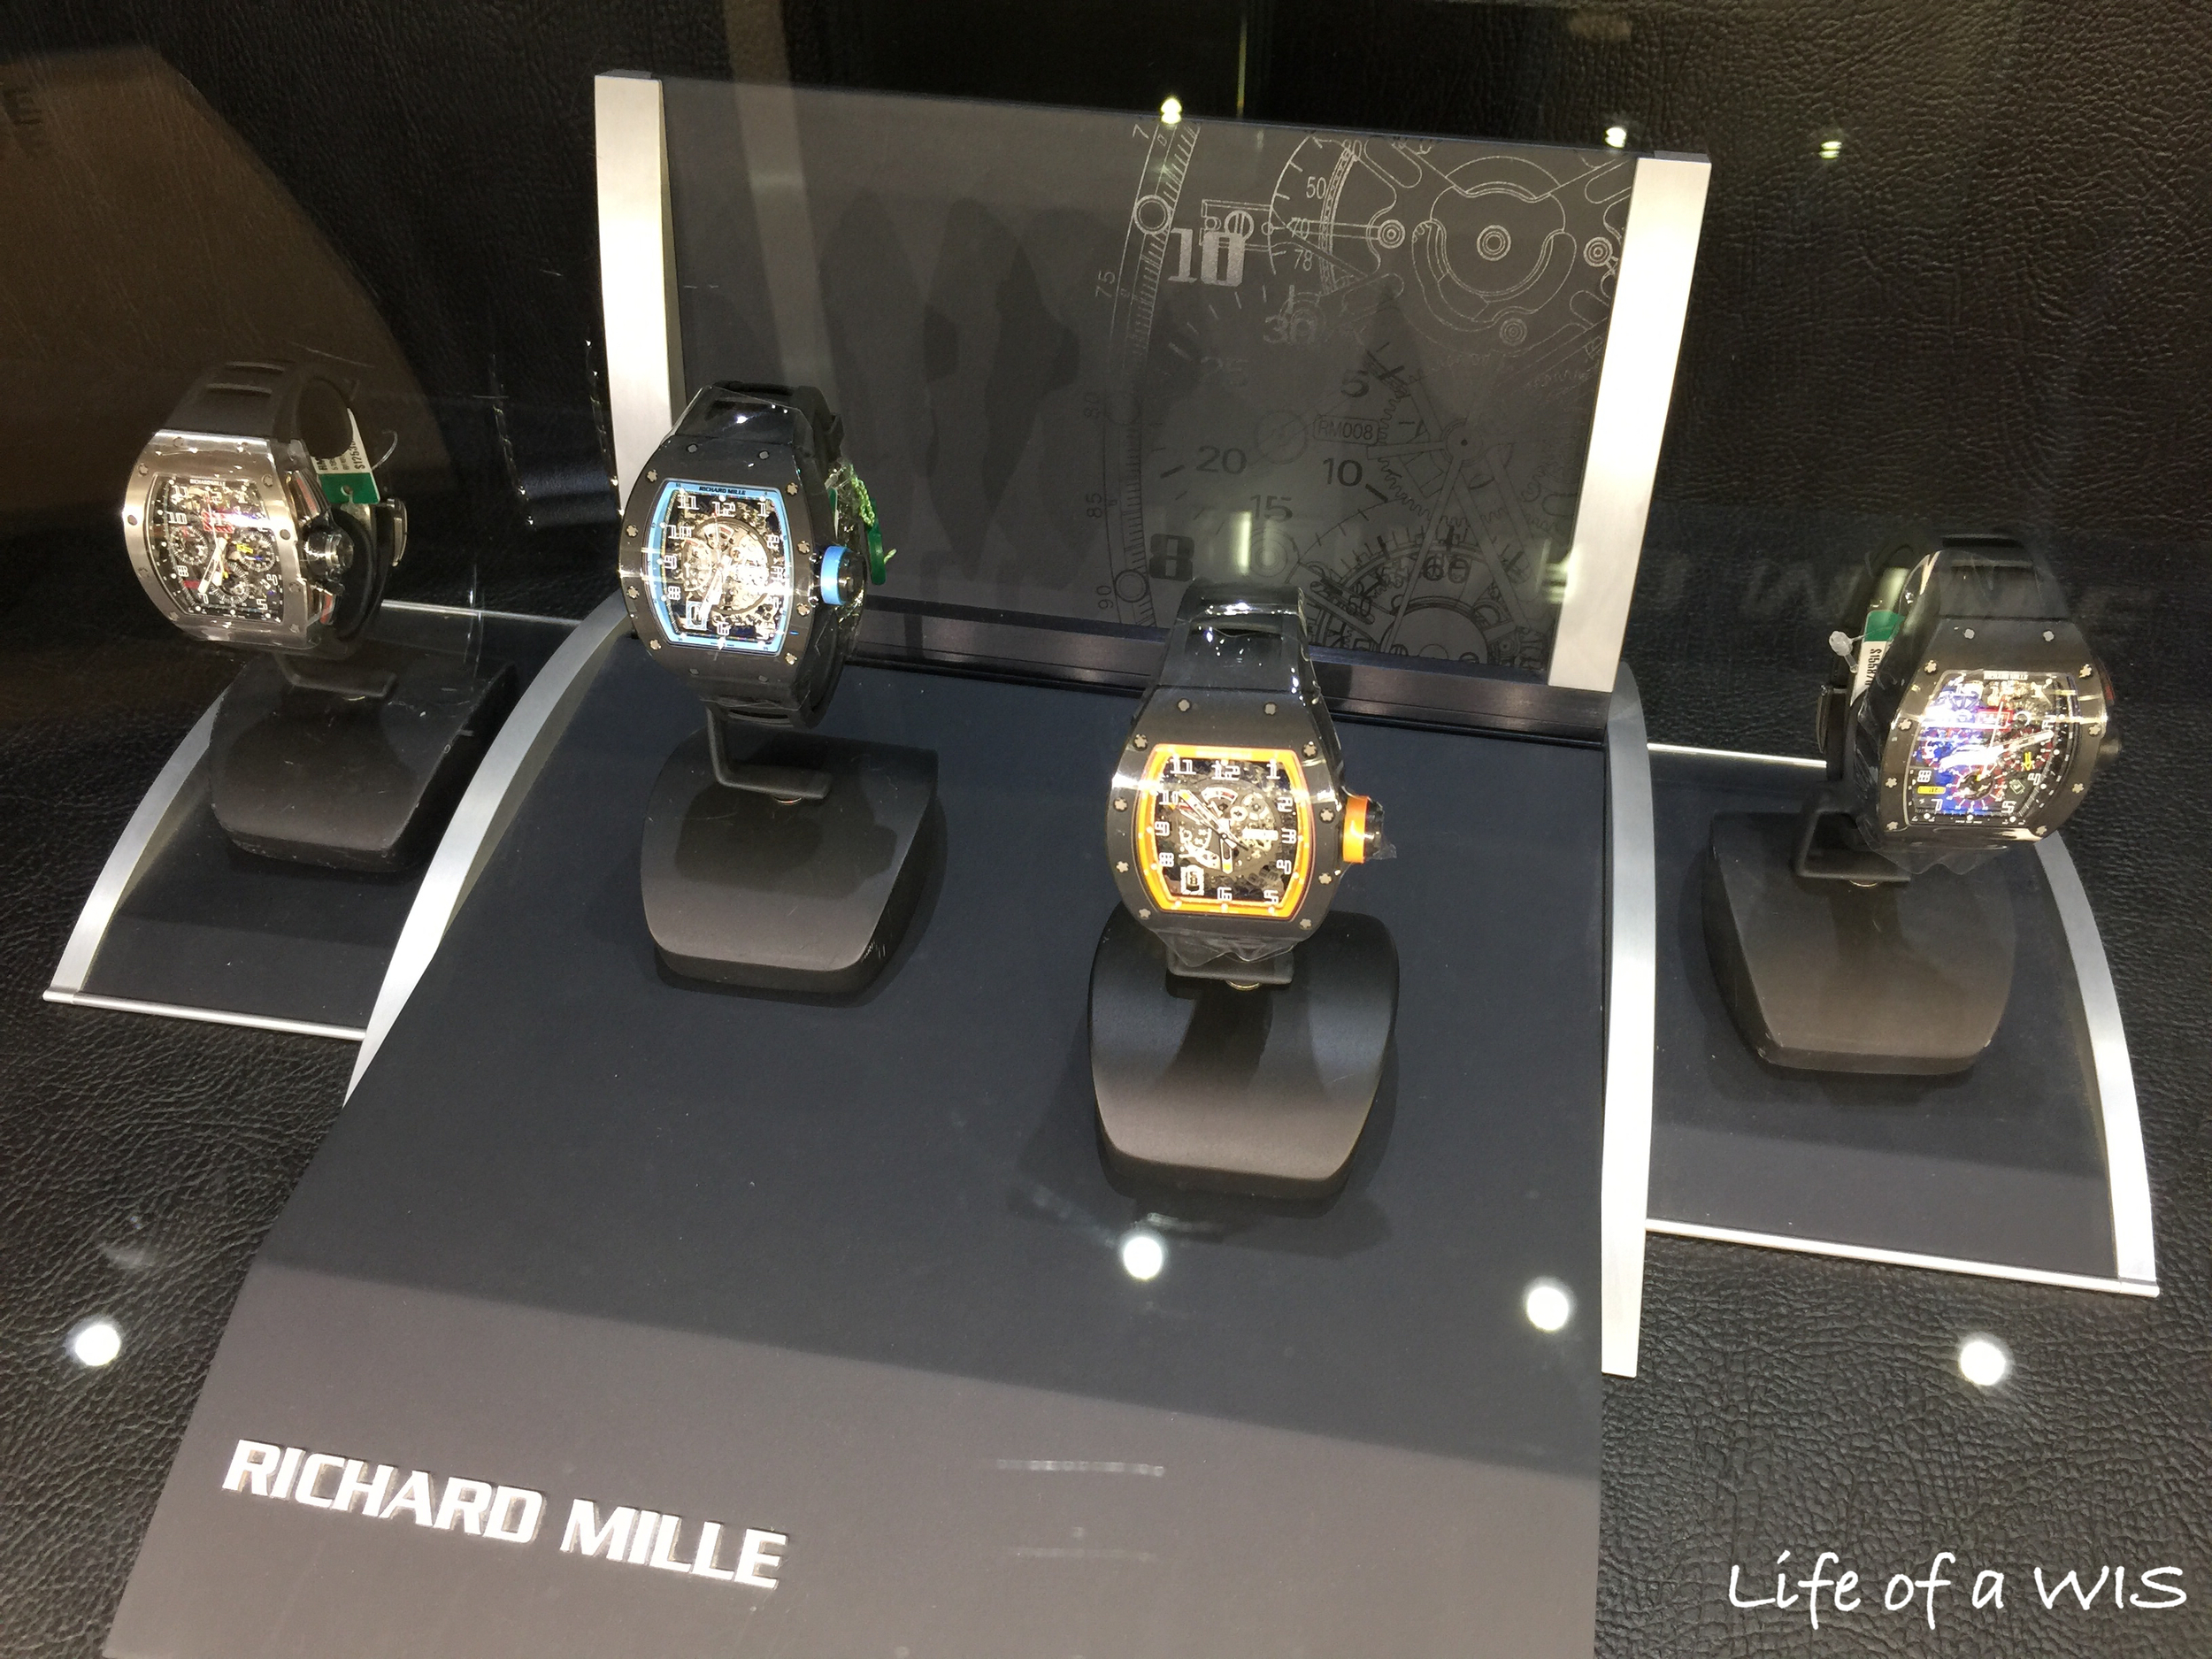 The Richard Mille selection.